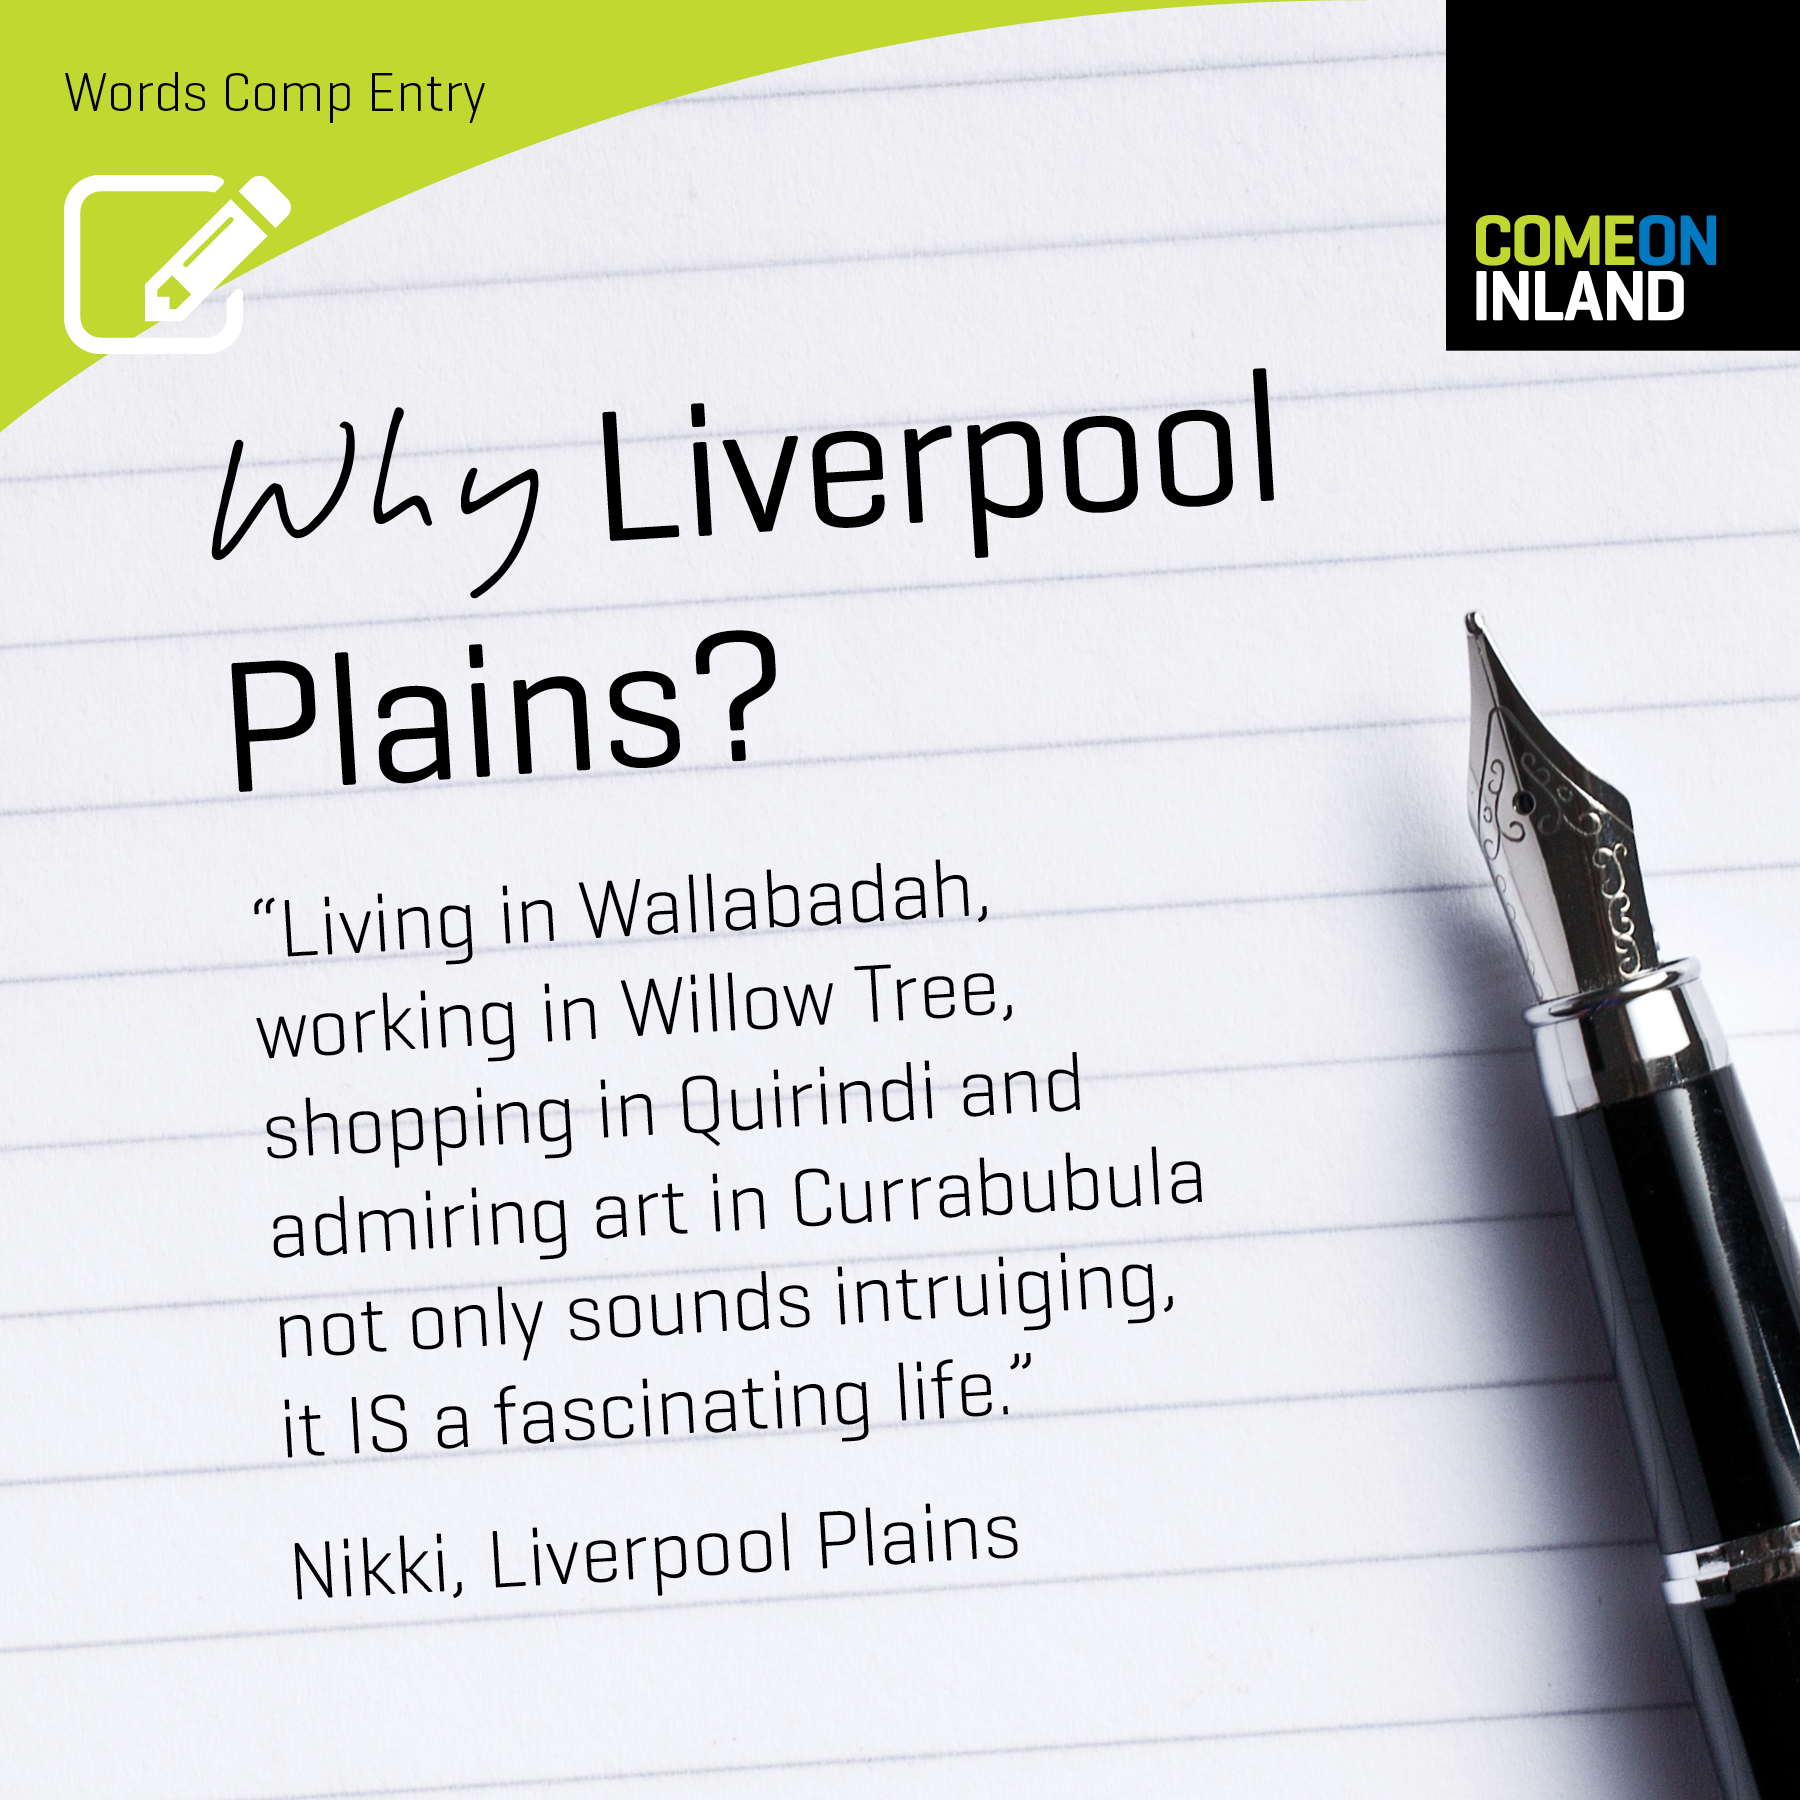 Liverpool Plains Words competition entry from Nikki